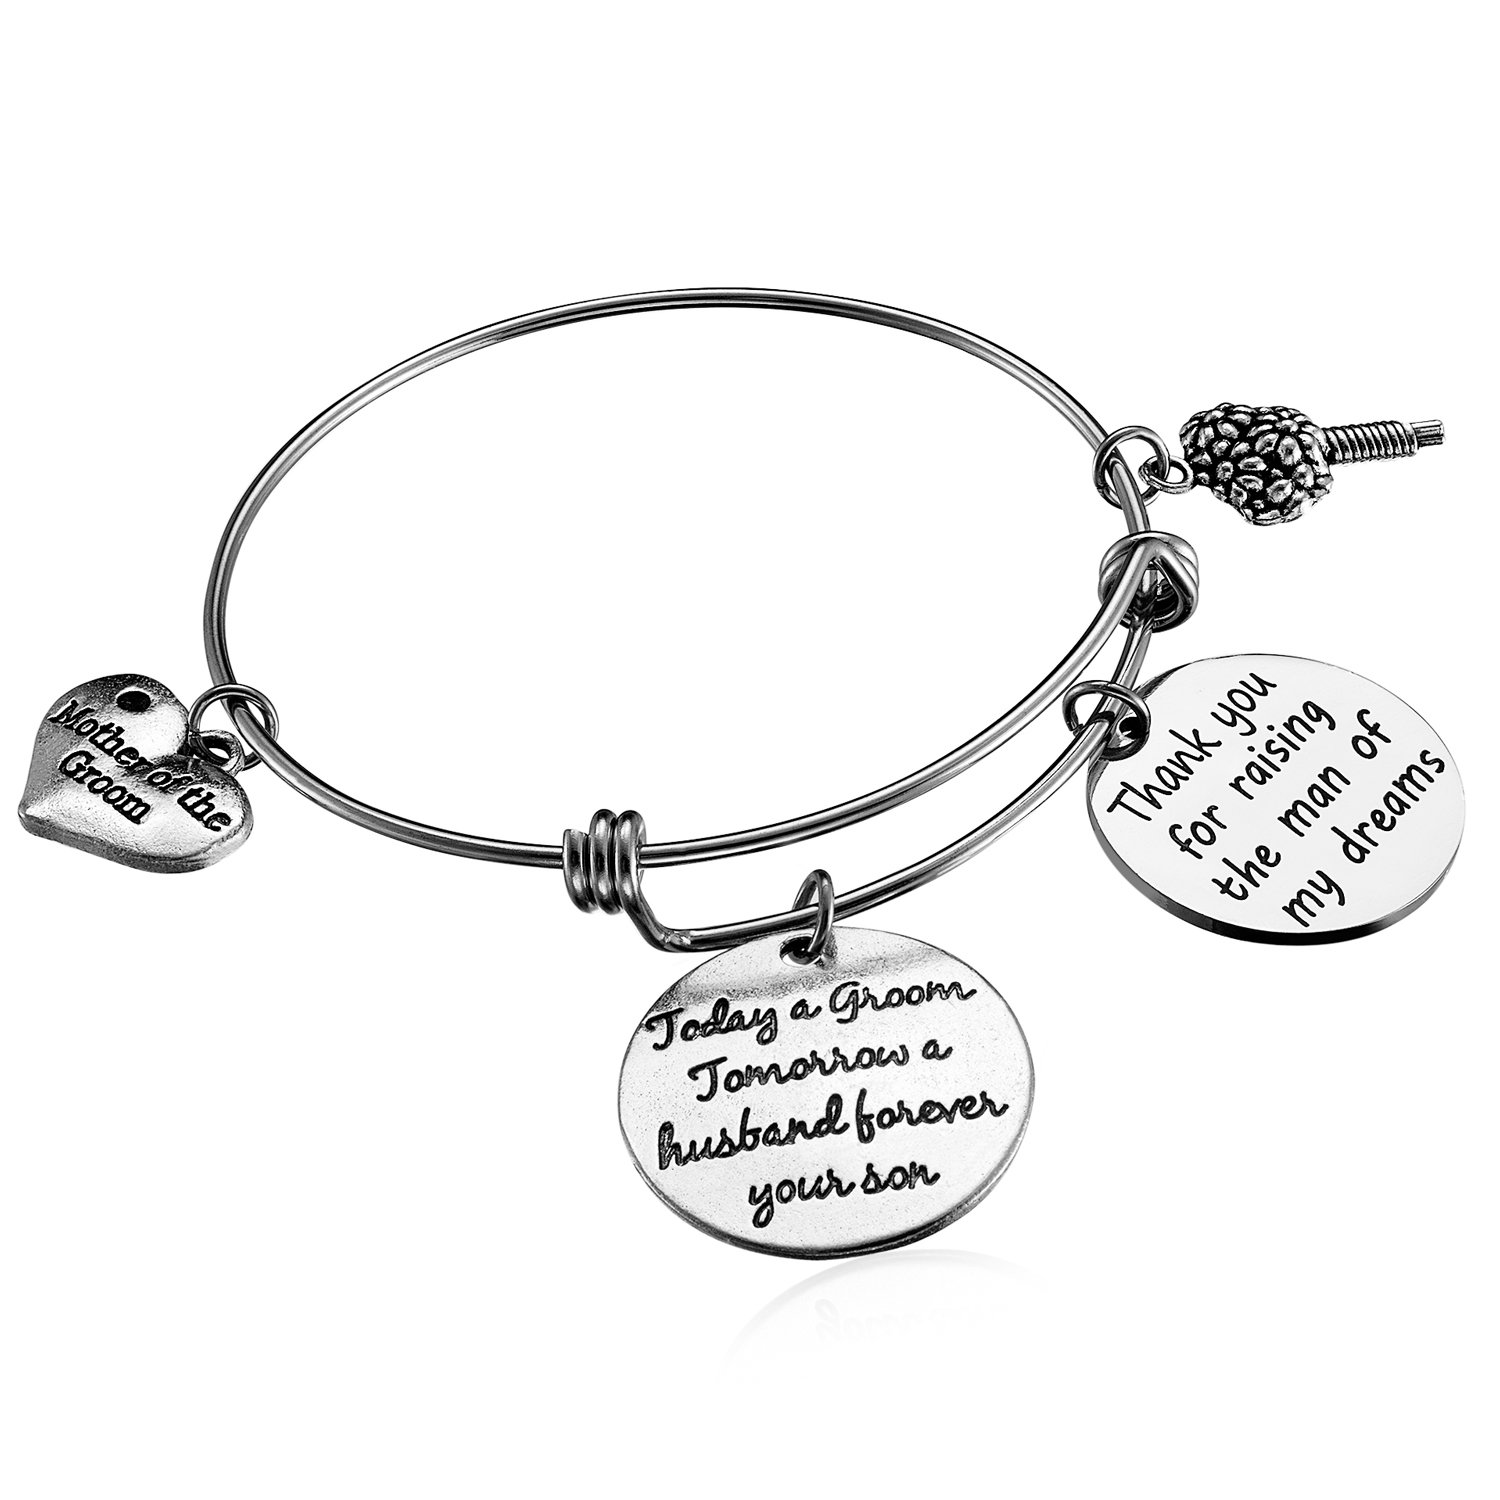 Alxeani Wedding Gift for Mother of the Groom Bangle Bracelet from Bride to Mother-in-Law Wedding Thank You Gift